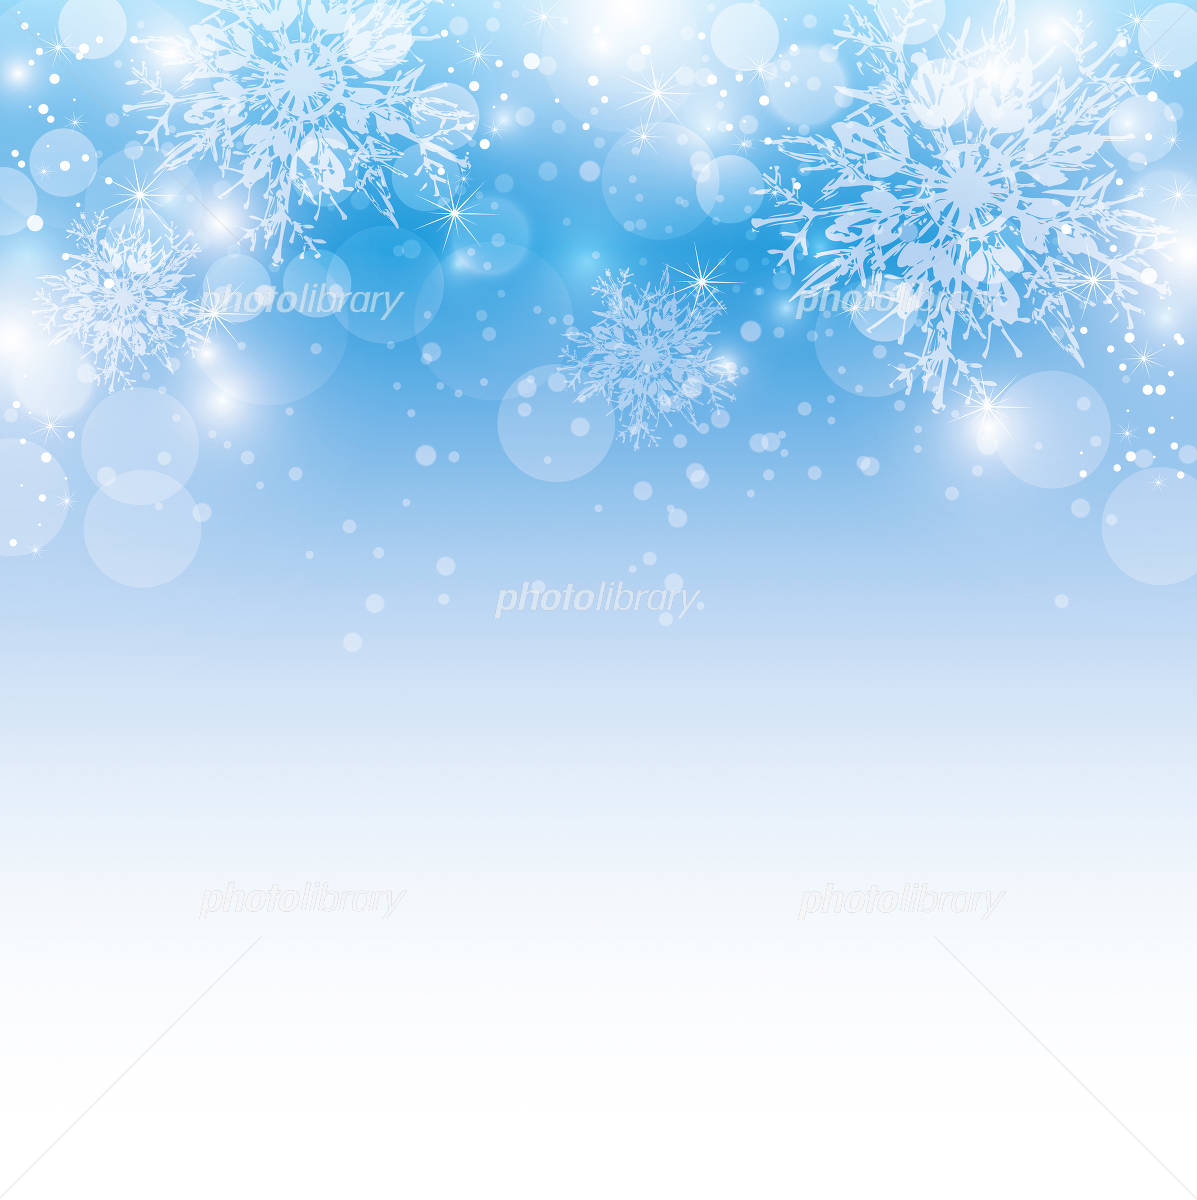 Snowflake background イラスト素材